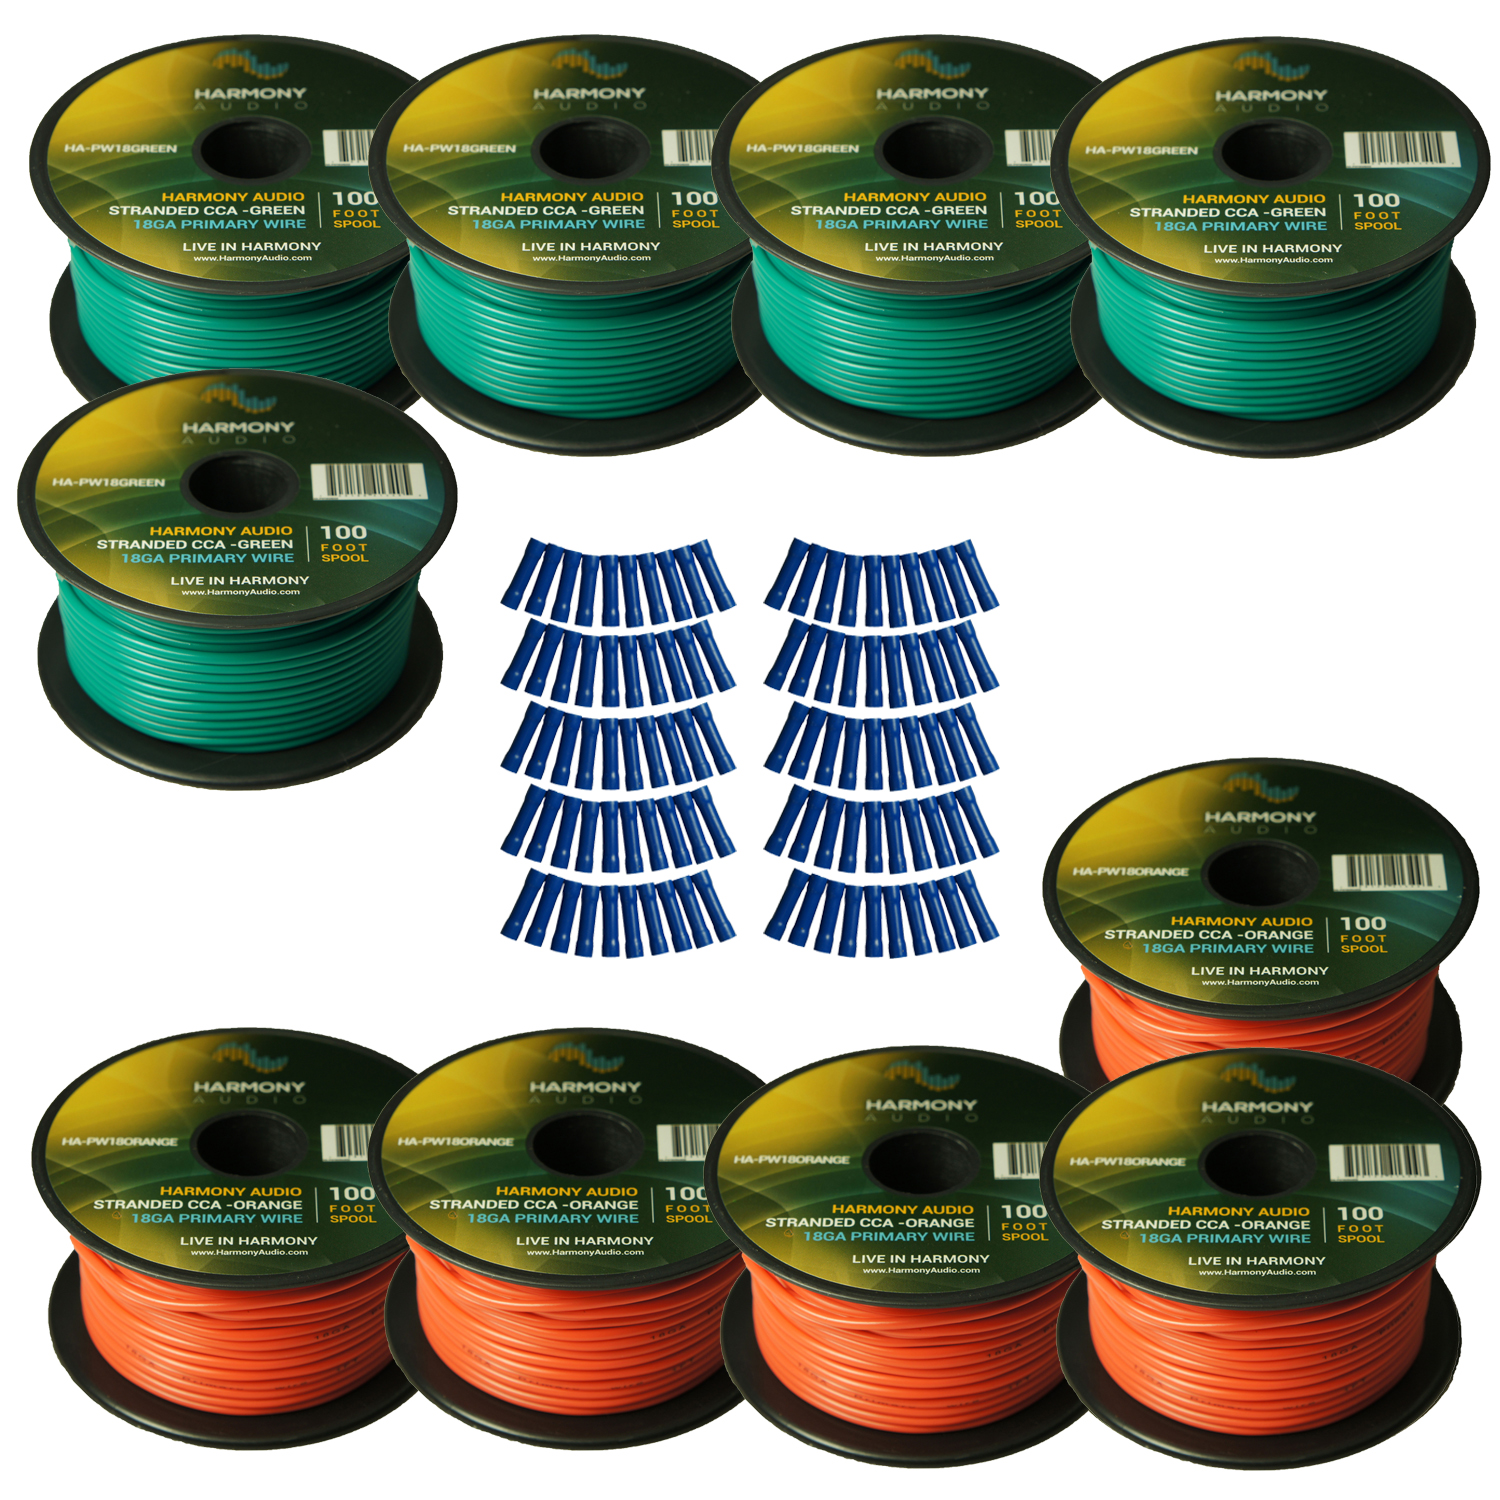 Harmony Audio Primary Single Conductor 18 Gauge Power or Ground Wire - 10 Rolls - 1000 Feet - Green & Orange for Car Audio / Trailer / Model Train / Remote